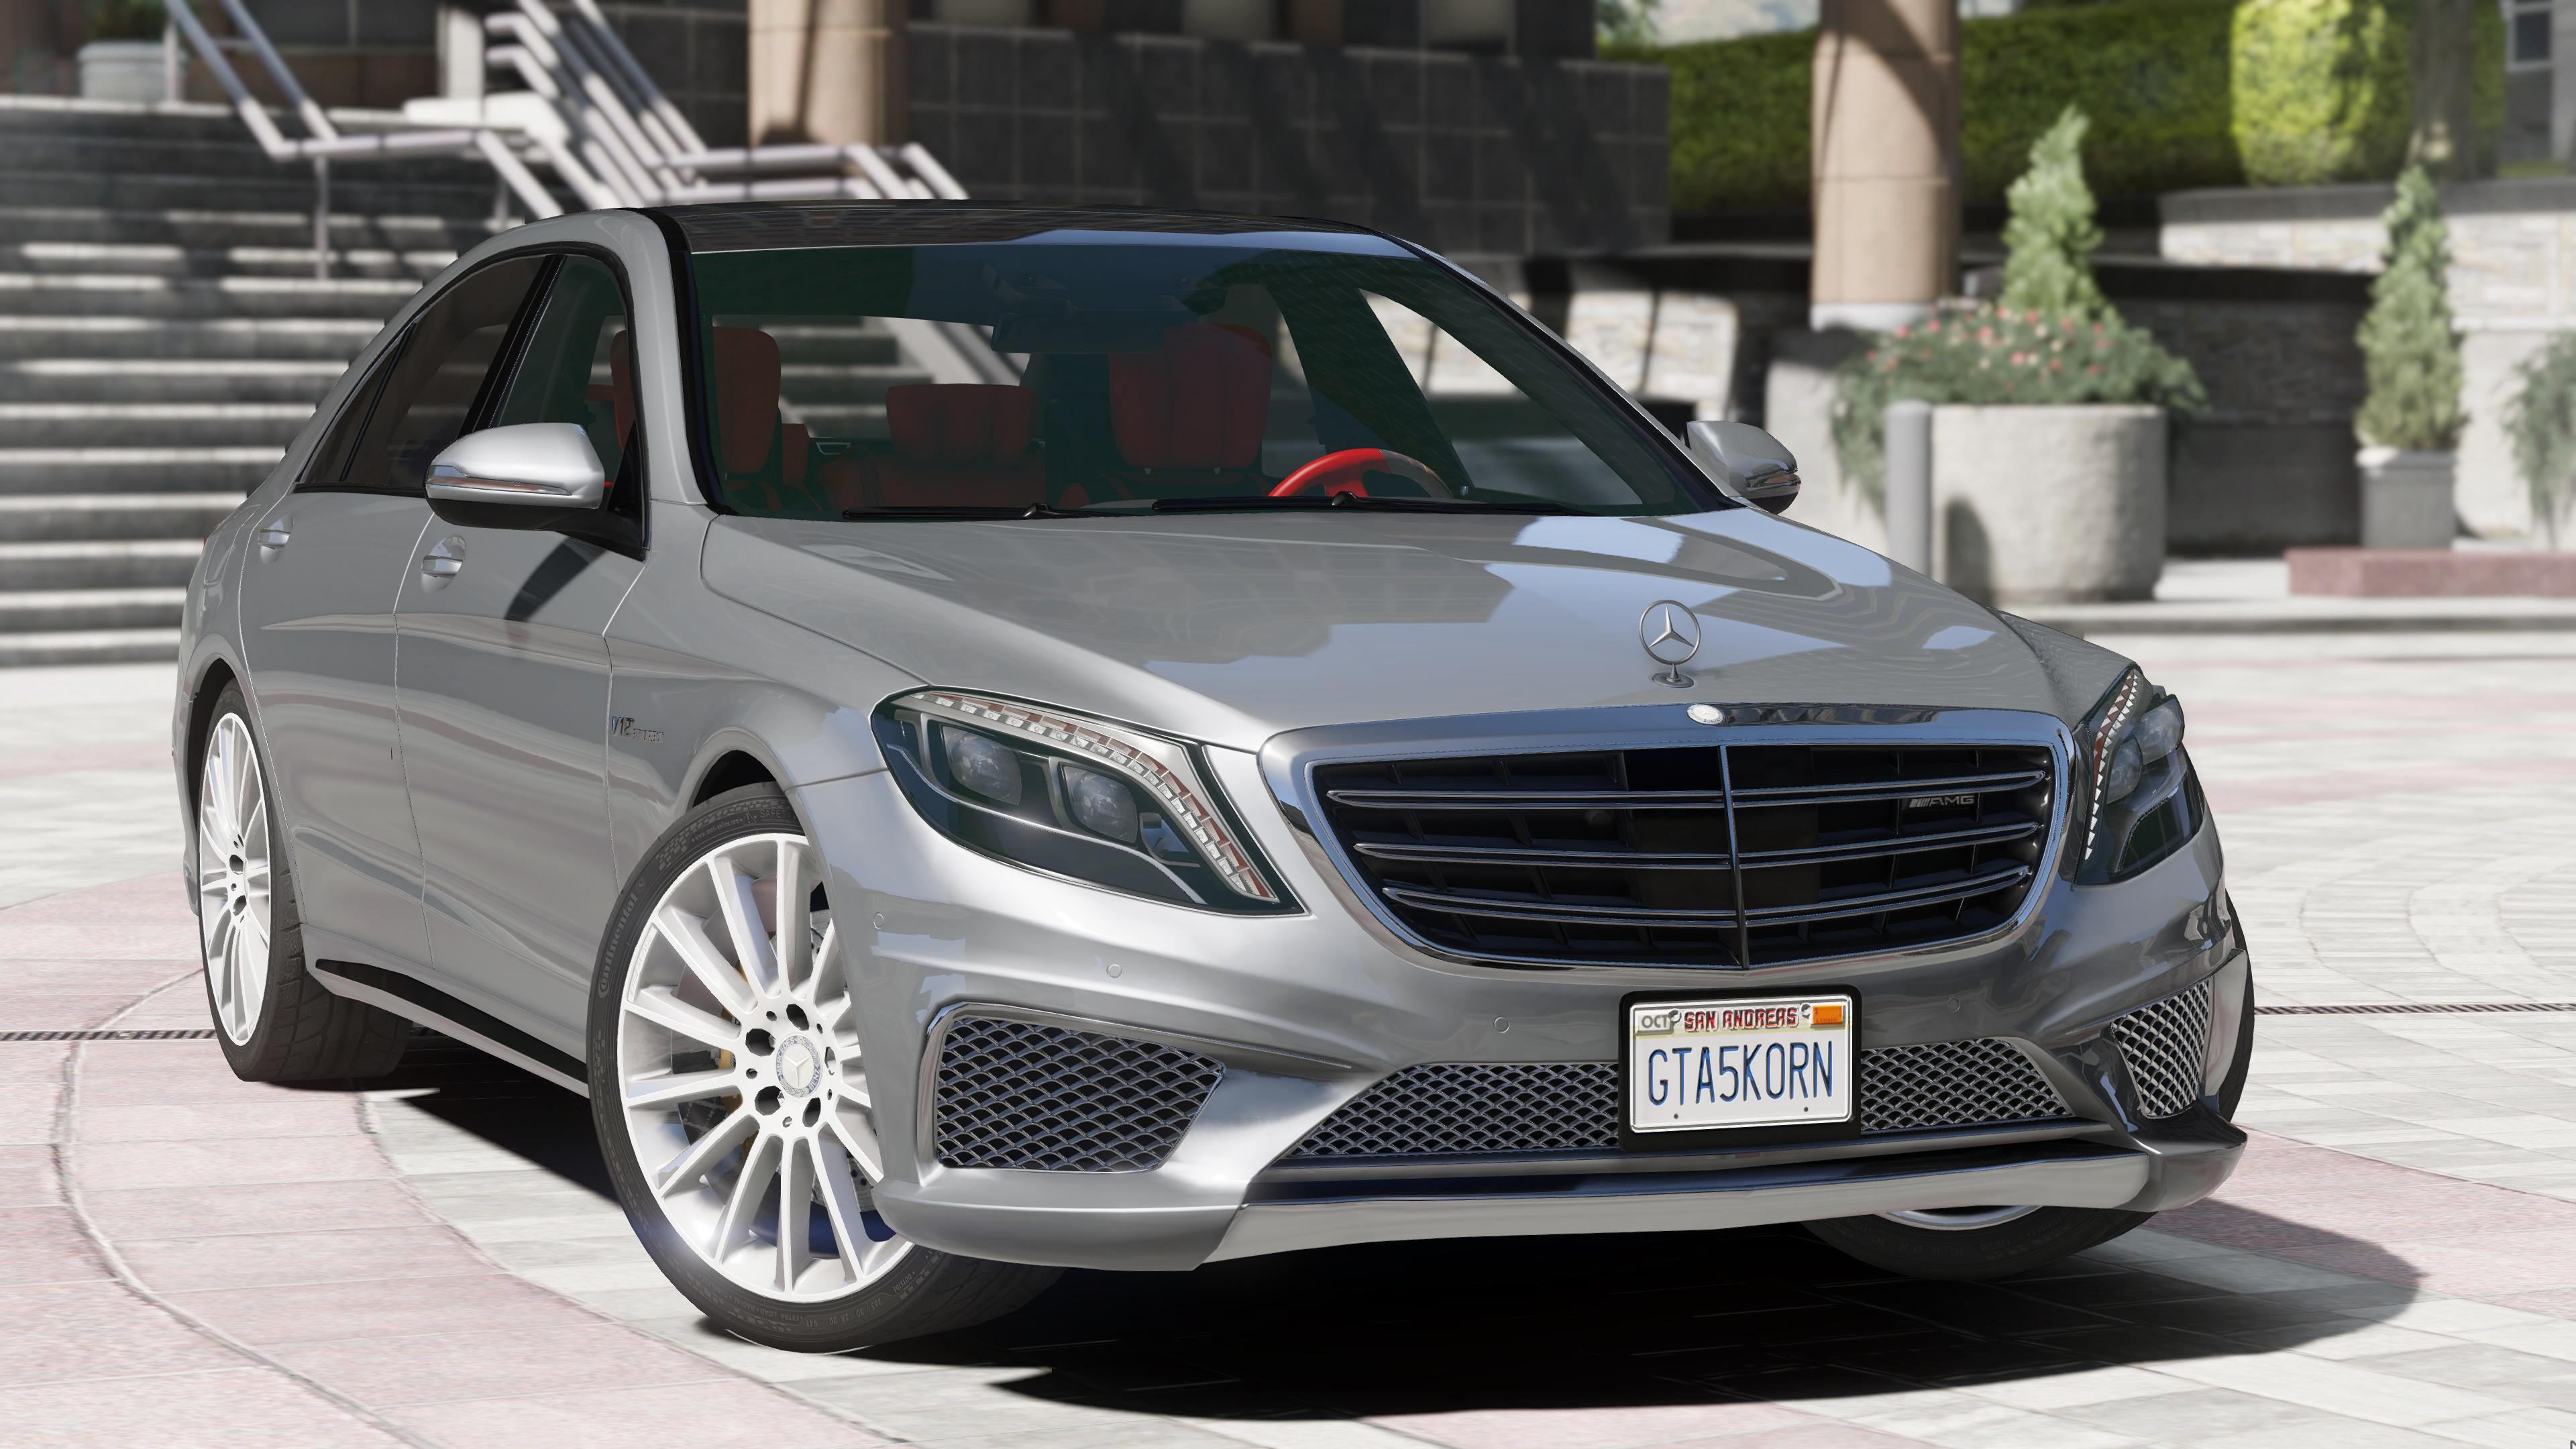 Mercedes benz s65 w222 add on replace gta5 for Mercedes benz s65